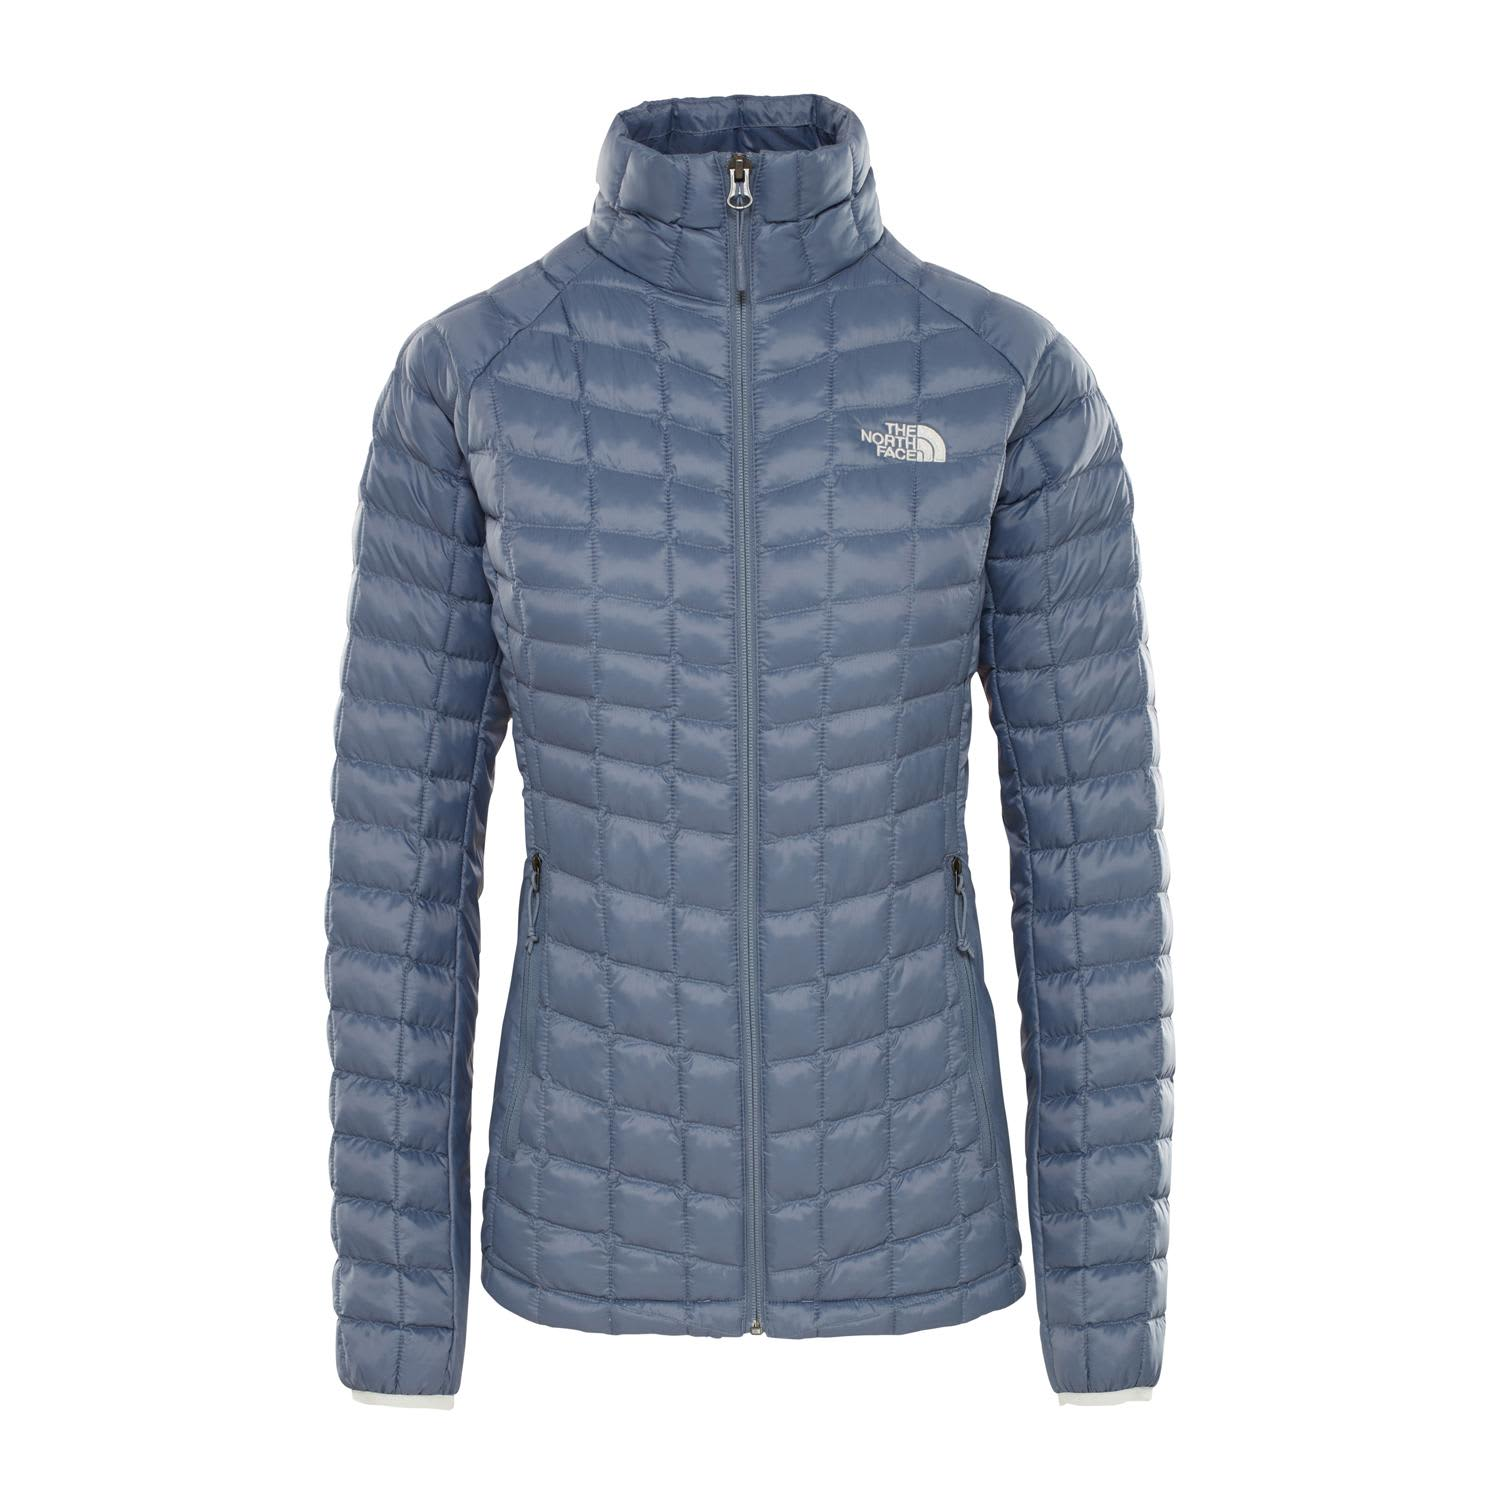 8b4f7e1a1 The North Face Women's Thermoball Sport Jacket